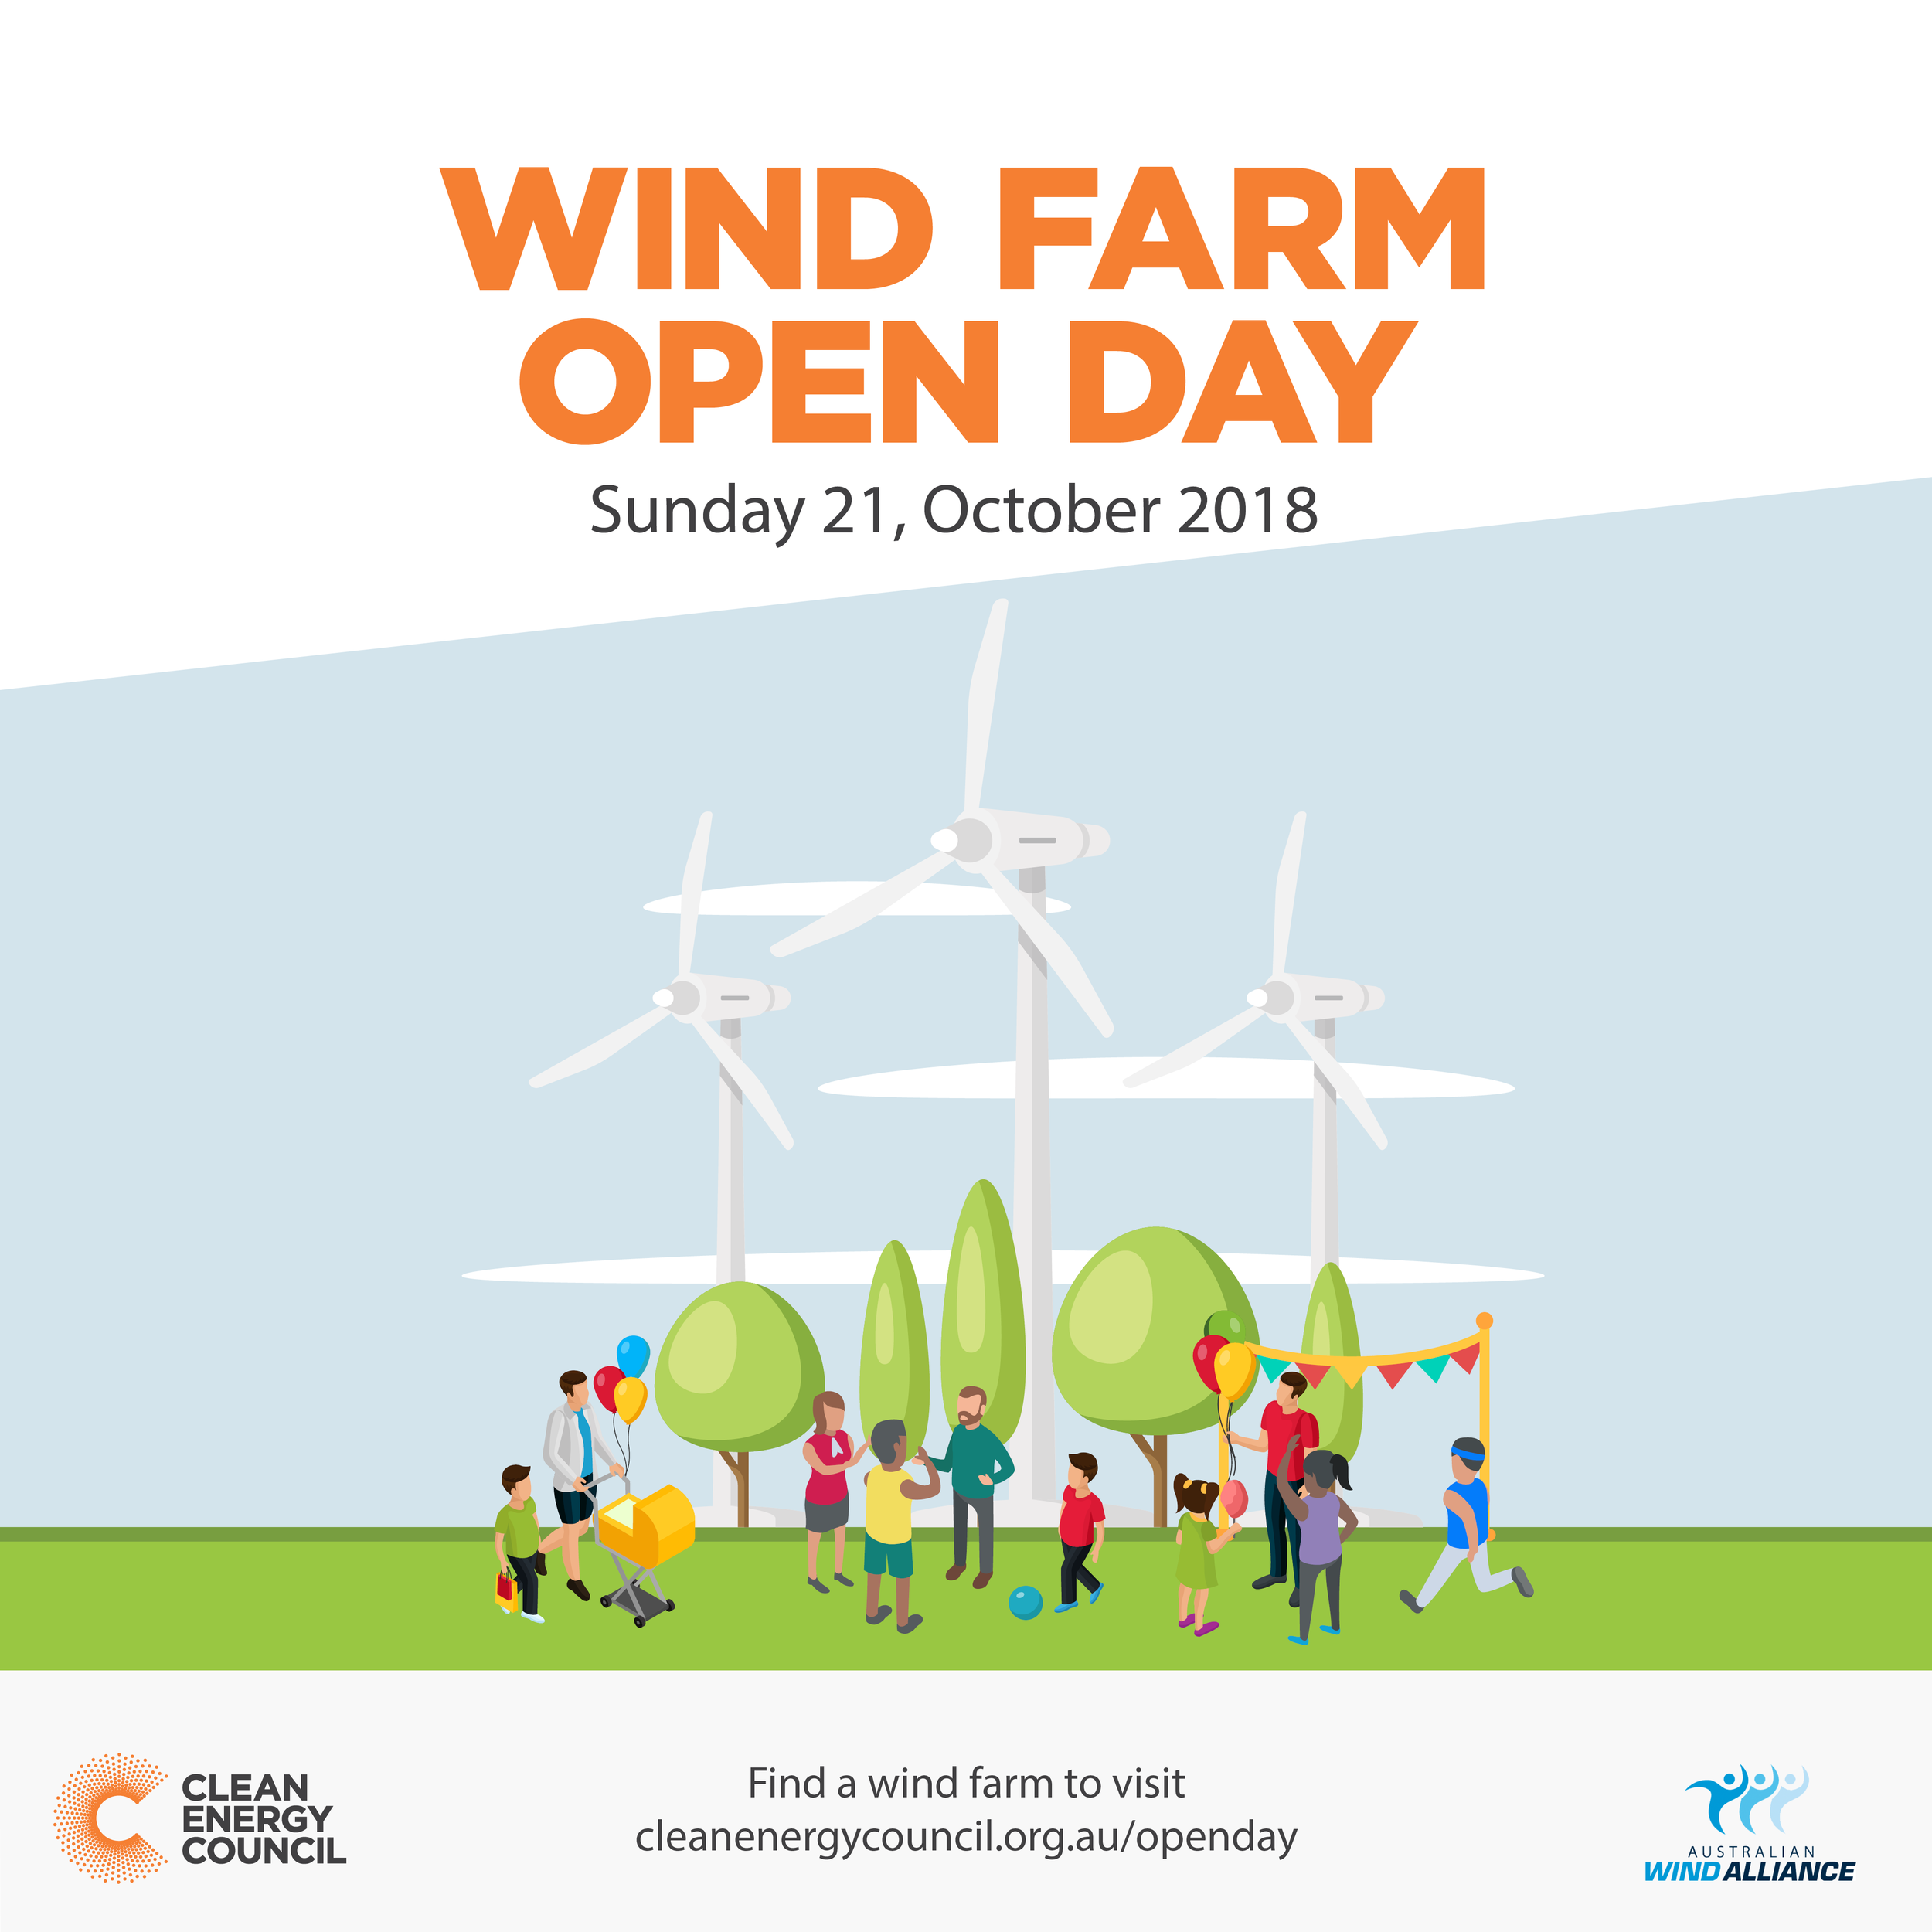 Wind-Farm-Openday-Clean-Energy-Council-2018.png